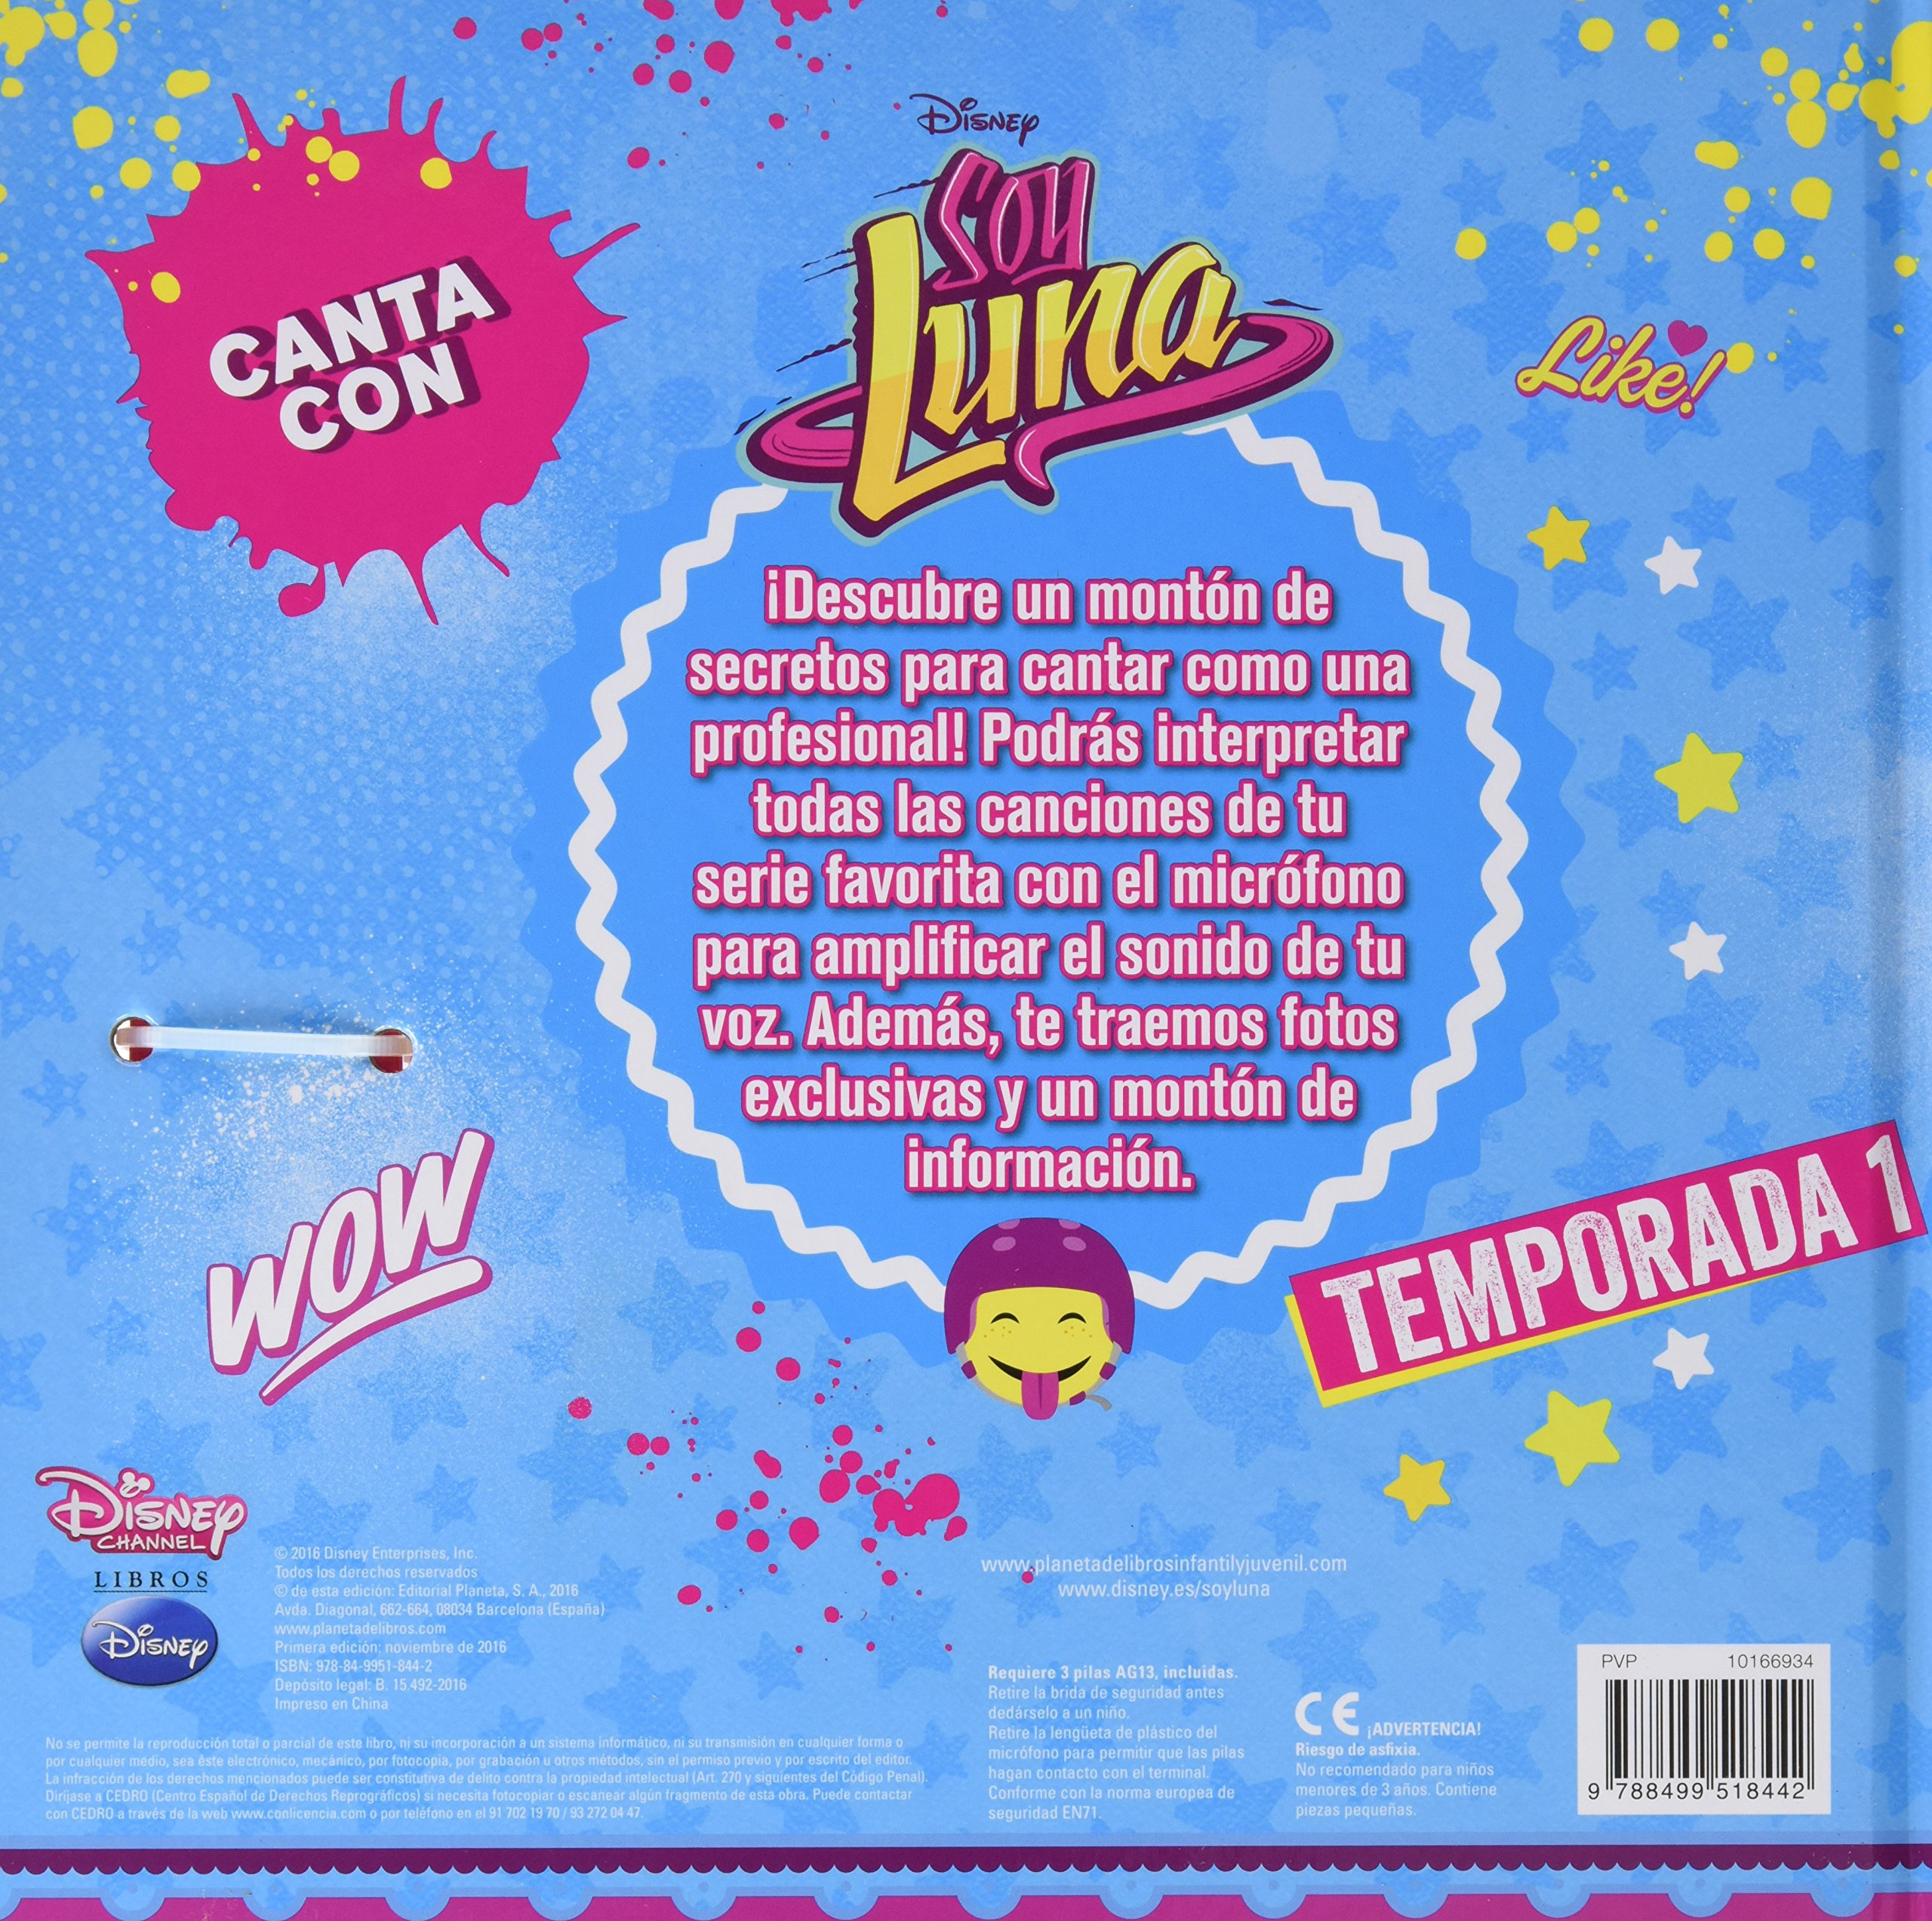 Canta con Soy Luna: Walt Disney Productions: 9788499518442: Amazon.com: Books